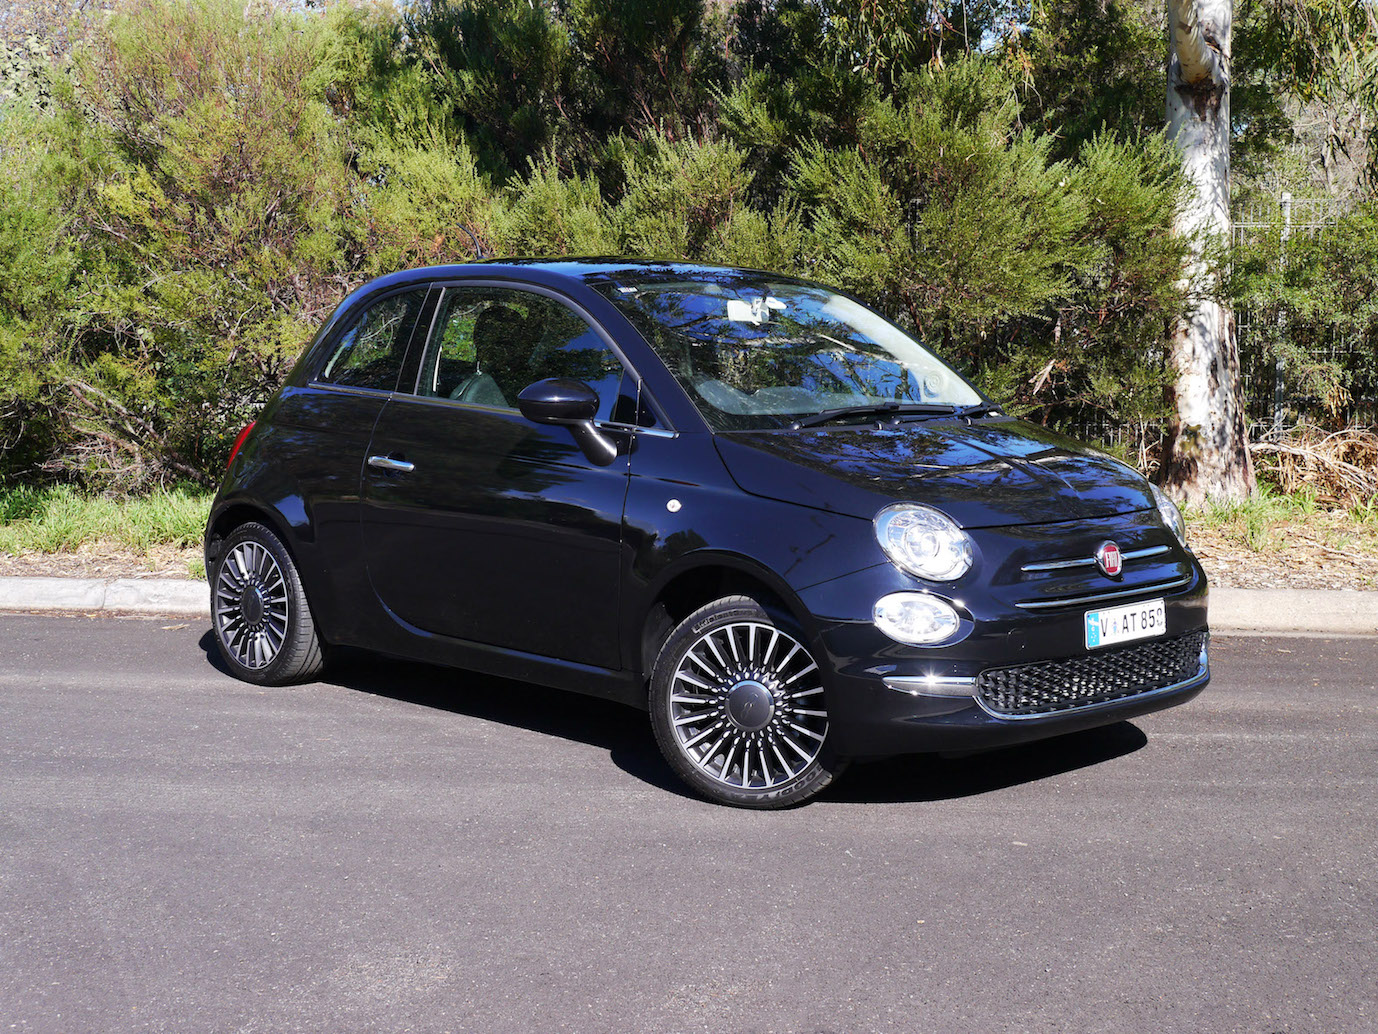 2016 Fiat 500 Lounge Automatic REVIEW, Price, Features | Gucci, Fendi, Prada, Fiat?